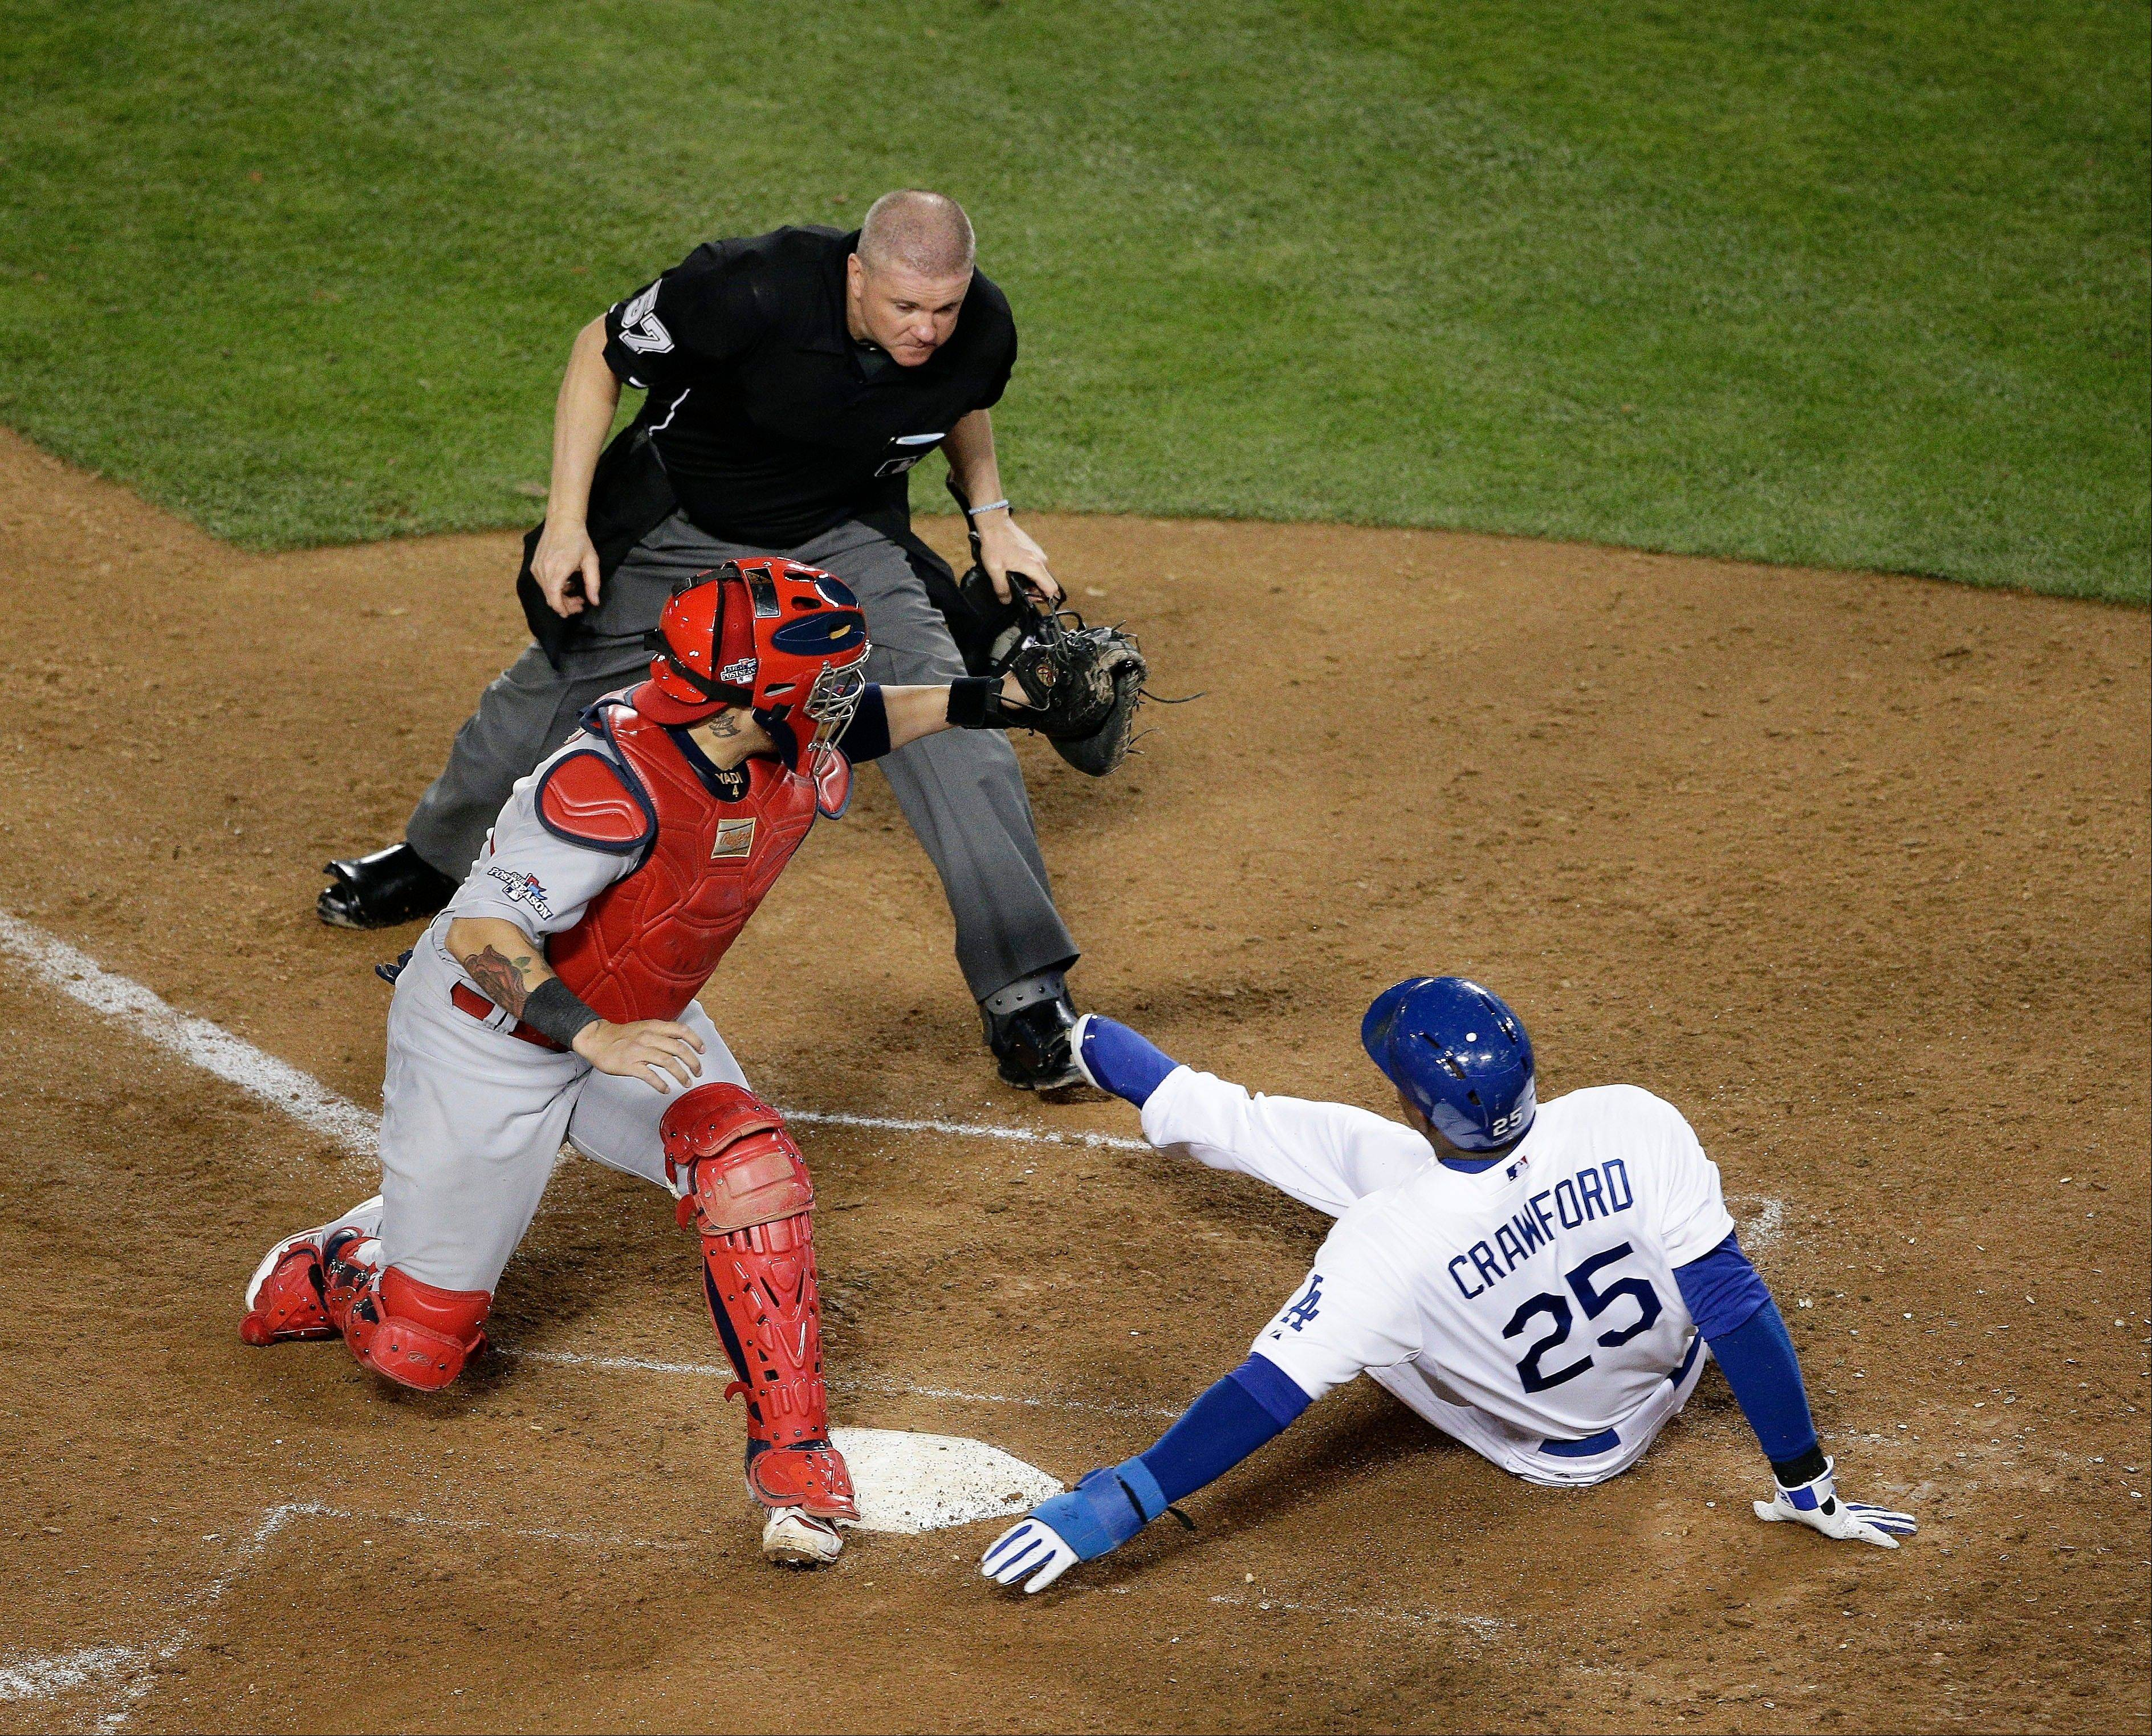 The Dodgers' Carl Crawford slides safely past St. Louis Cardinals catcher Yadier Molina.